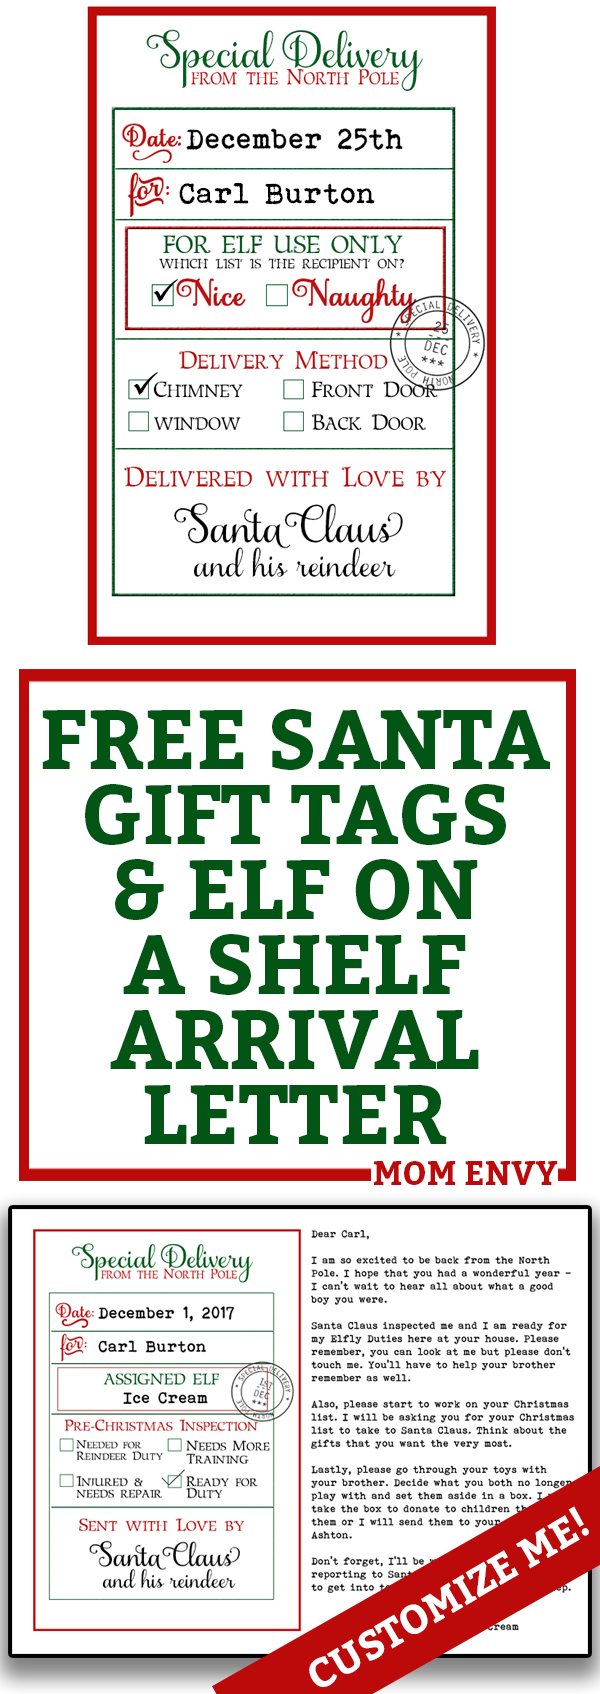 picture regarding Elf on the Shelf Letter Printable referred to as No cost Custom made Santa Reward Tags and Elf Introduction Letter - 3 No cost